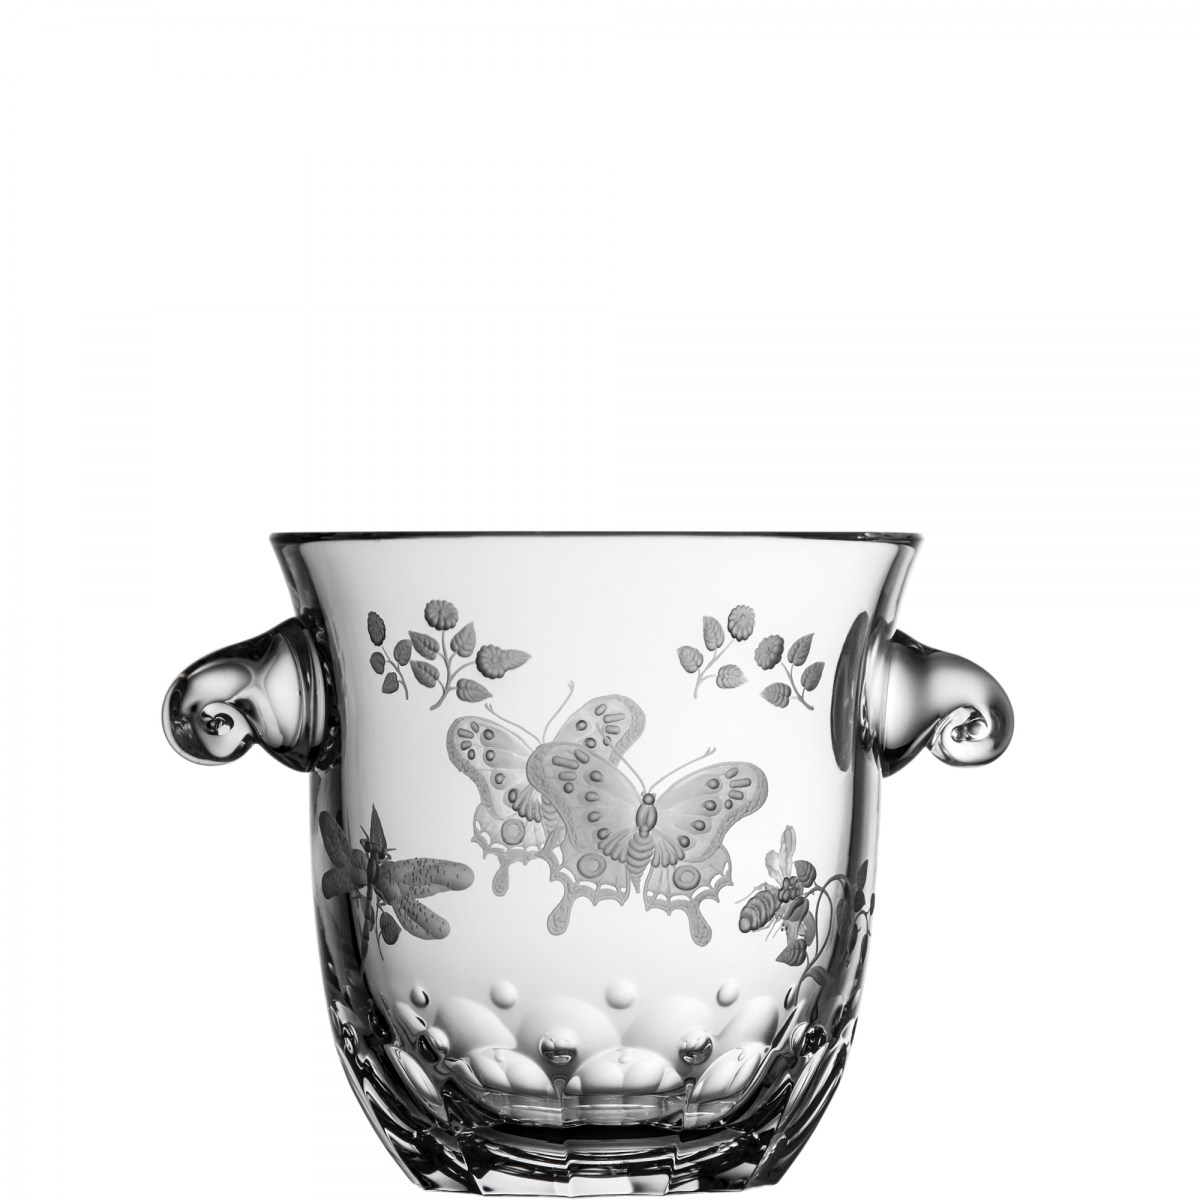 Springtime Ice Bucket - $ 363 / € 318